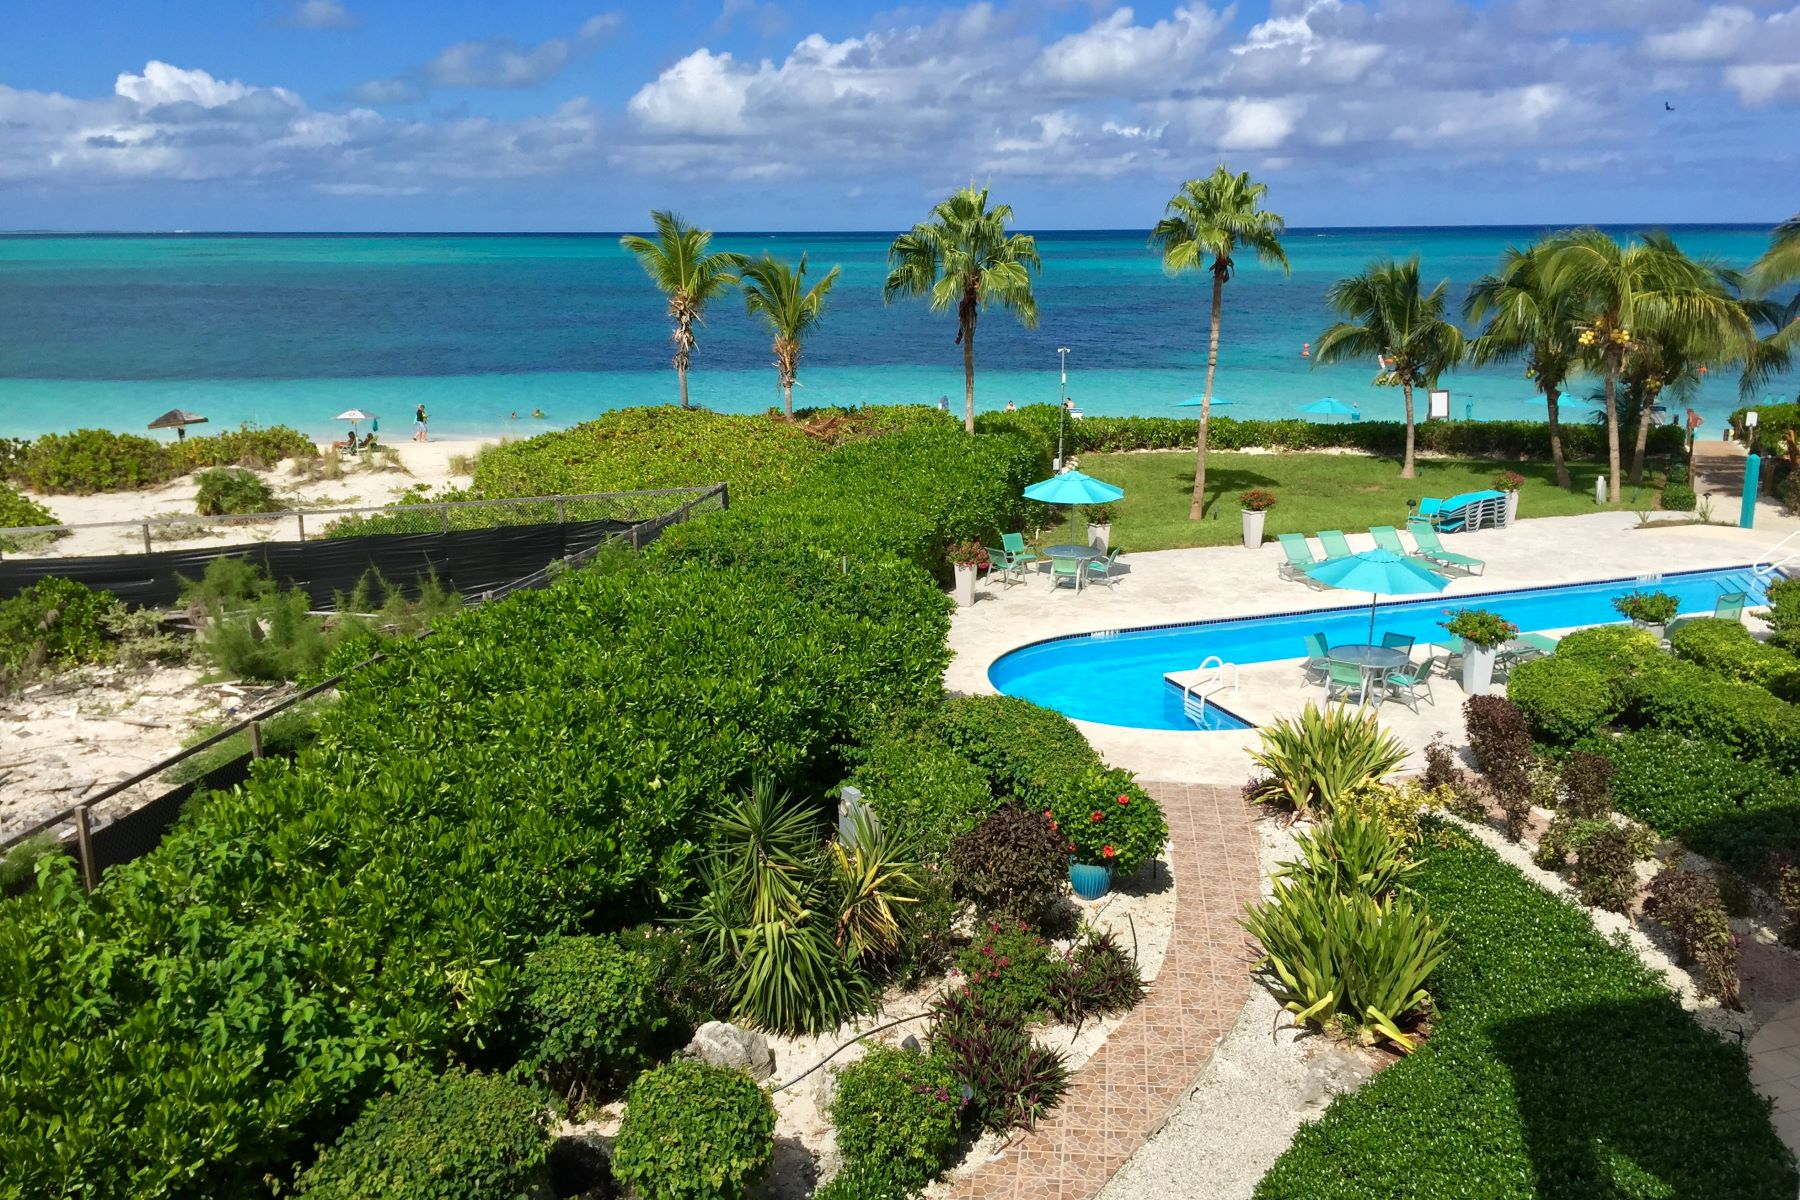 Condominium for Sale at Coral Gardens - Suite 4304 Beachfront Grace Bay, Providenciales, TC Turks And Caicos Islands